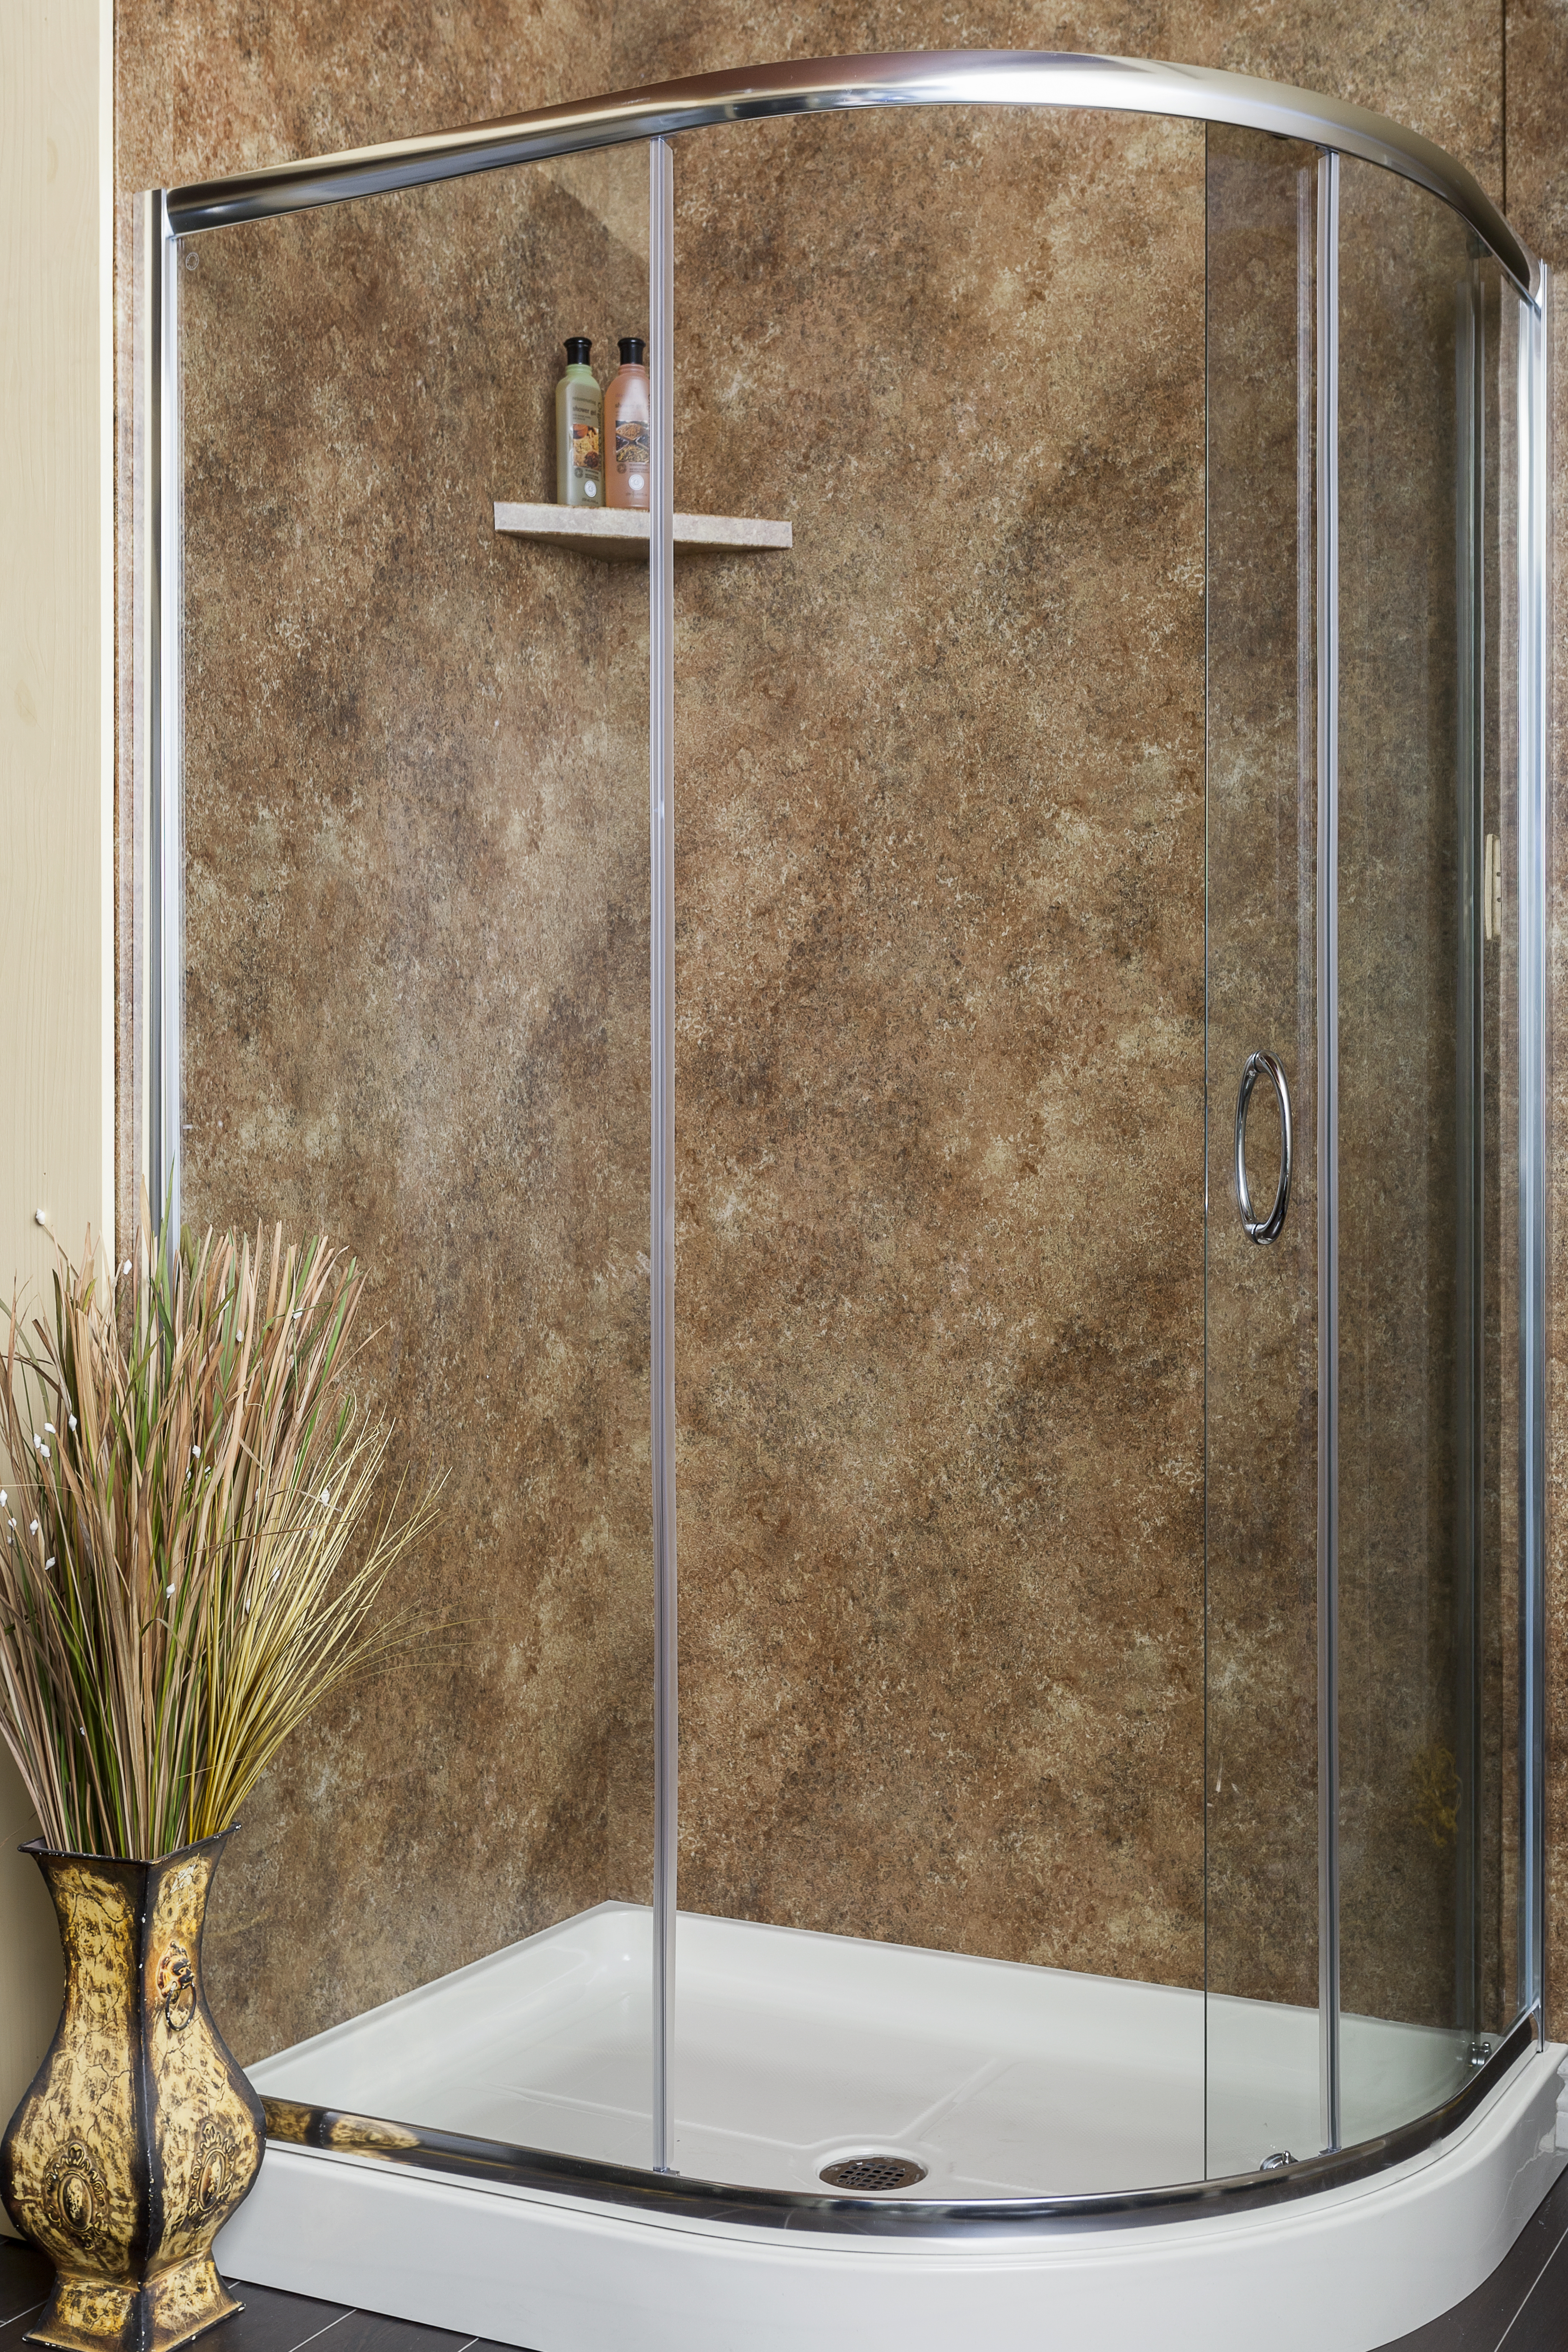 Froggwall Shower Surrounds Shower Renovations |Ultimate Bath Systems